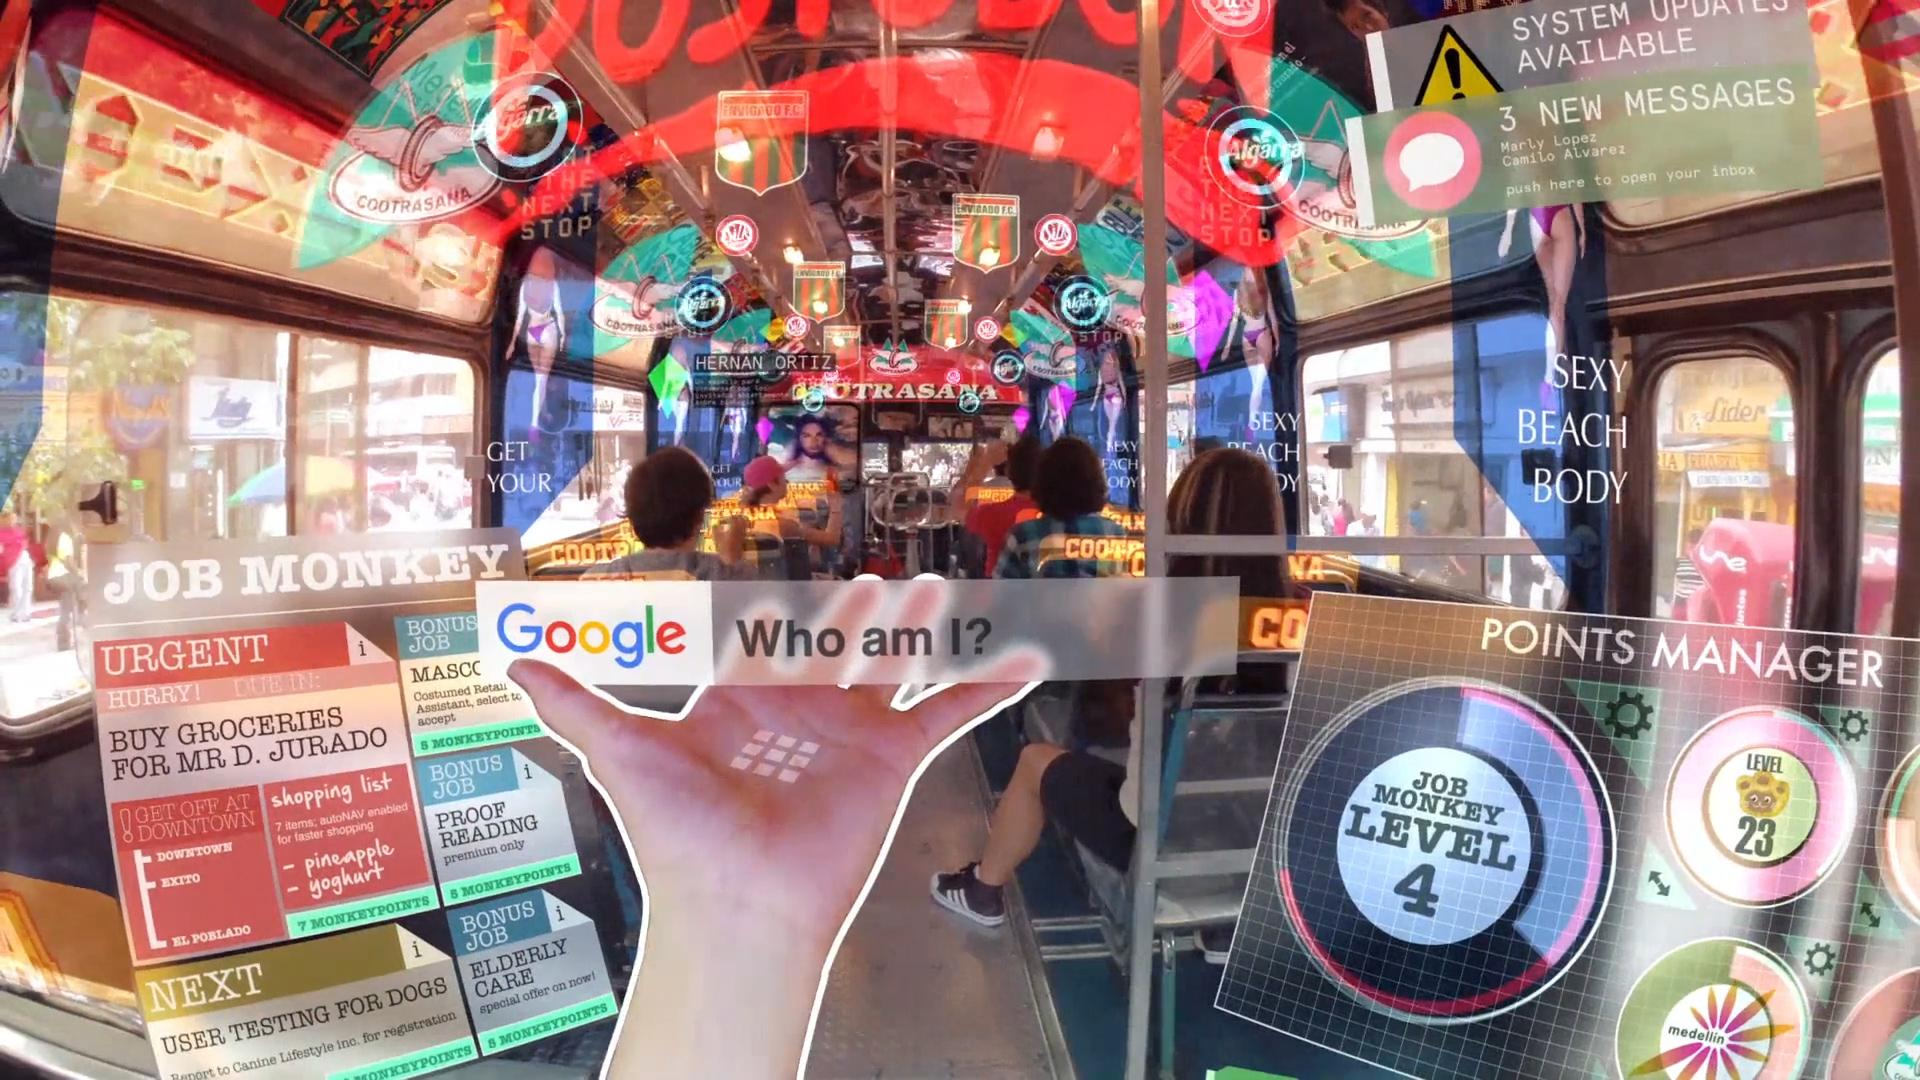 Short film depicts horrific future of augmented reality (Tomorrow Daily 370)